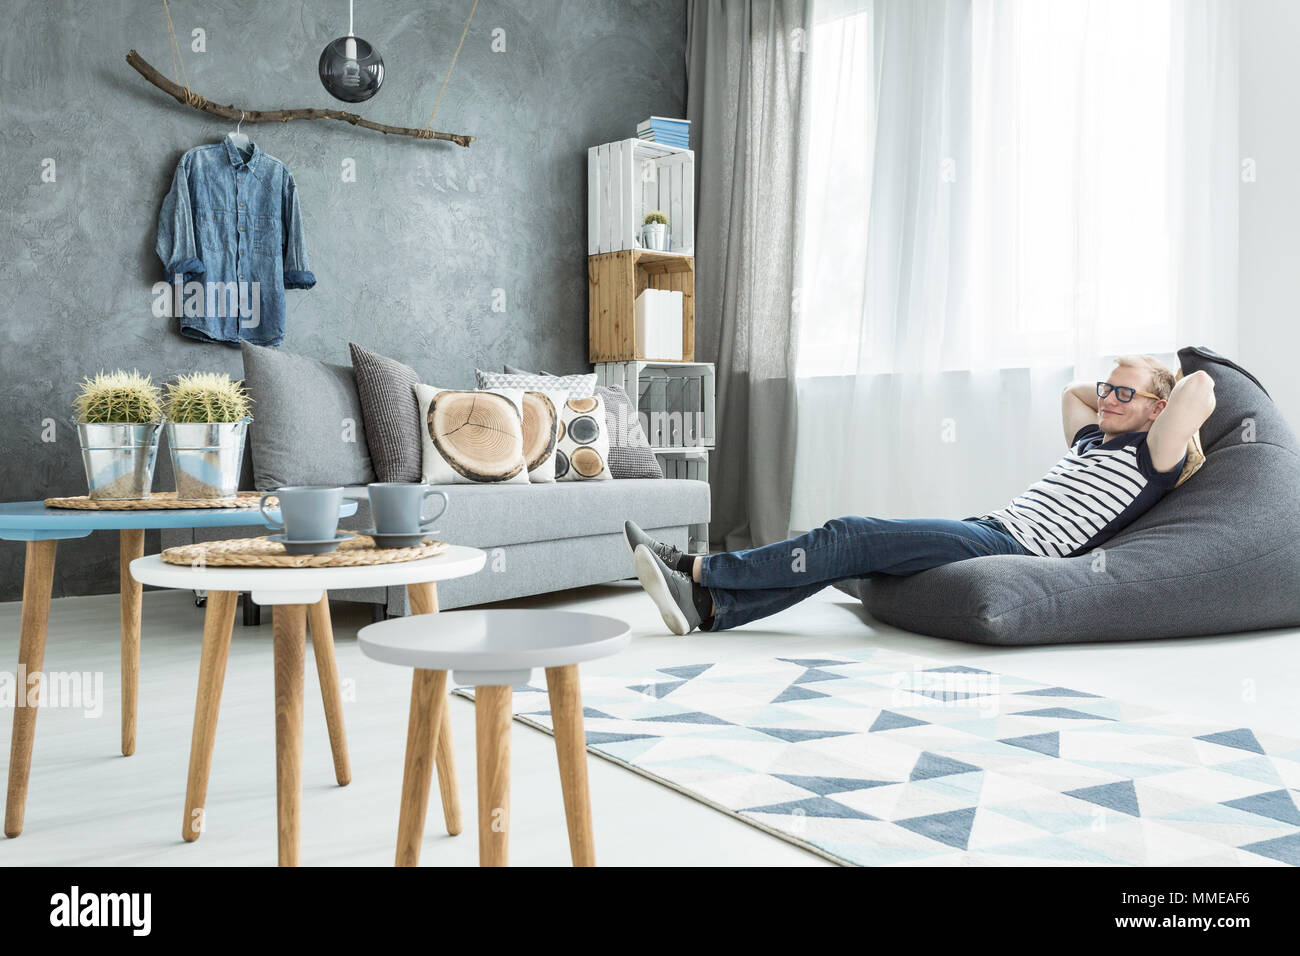 Modern minimalistic and bright living room in shades of cyan with sofa, three coffee tables, carpet, stillage made of wooden cases and a man sitting o - Stock Image